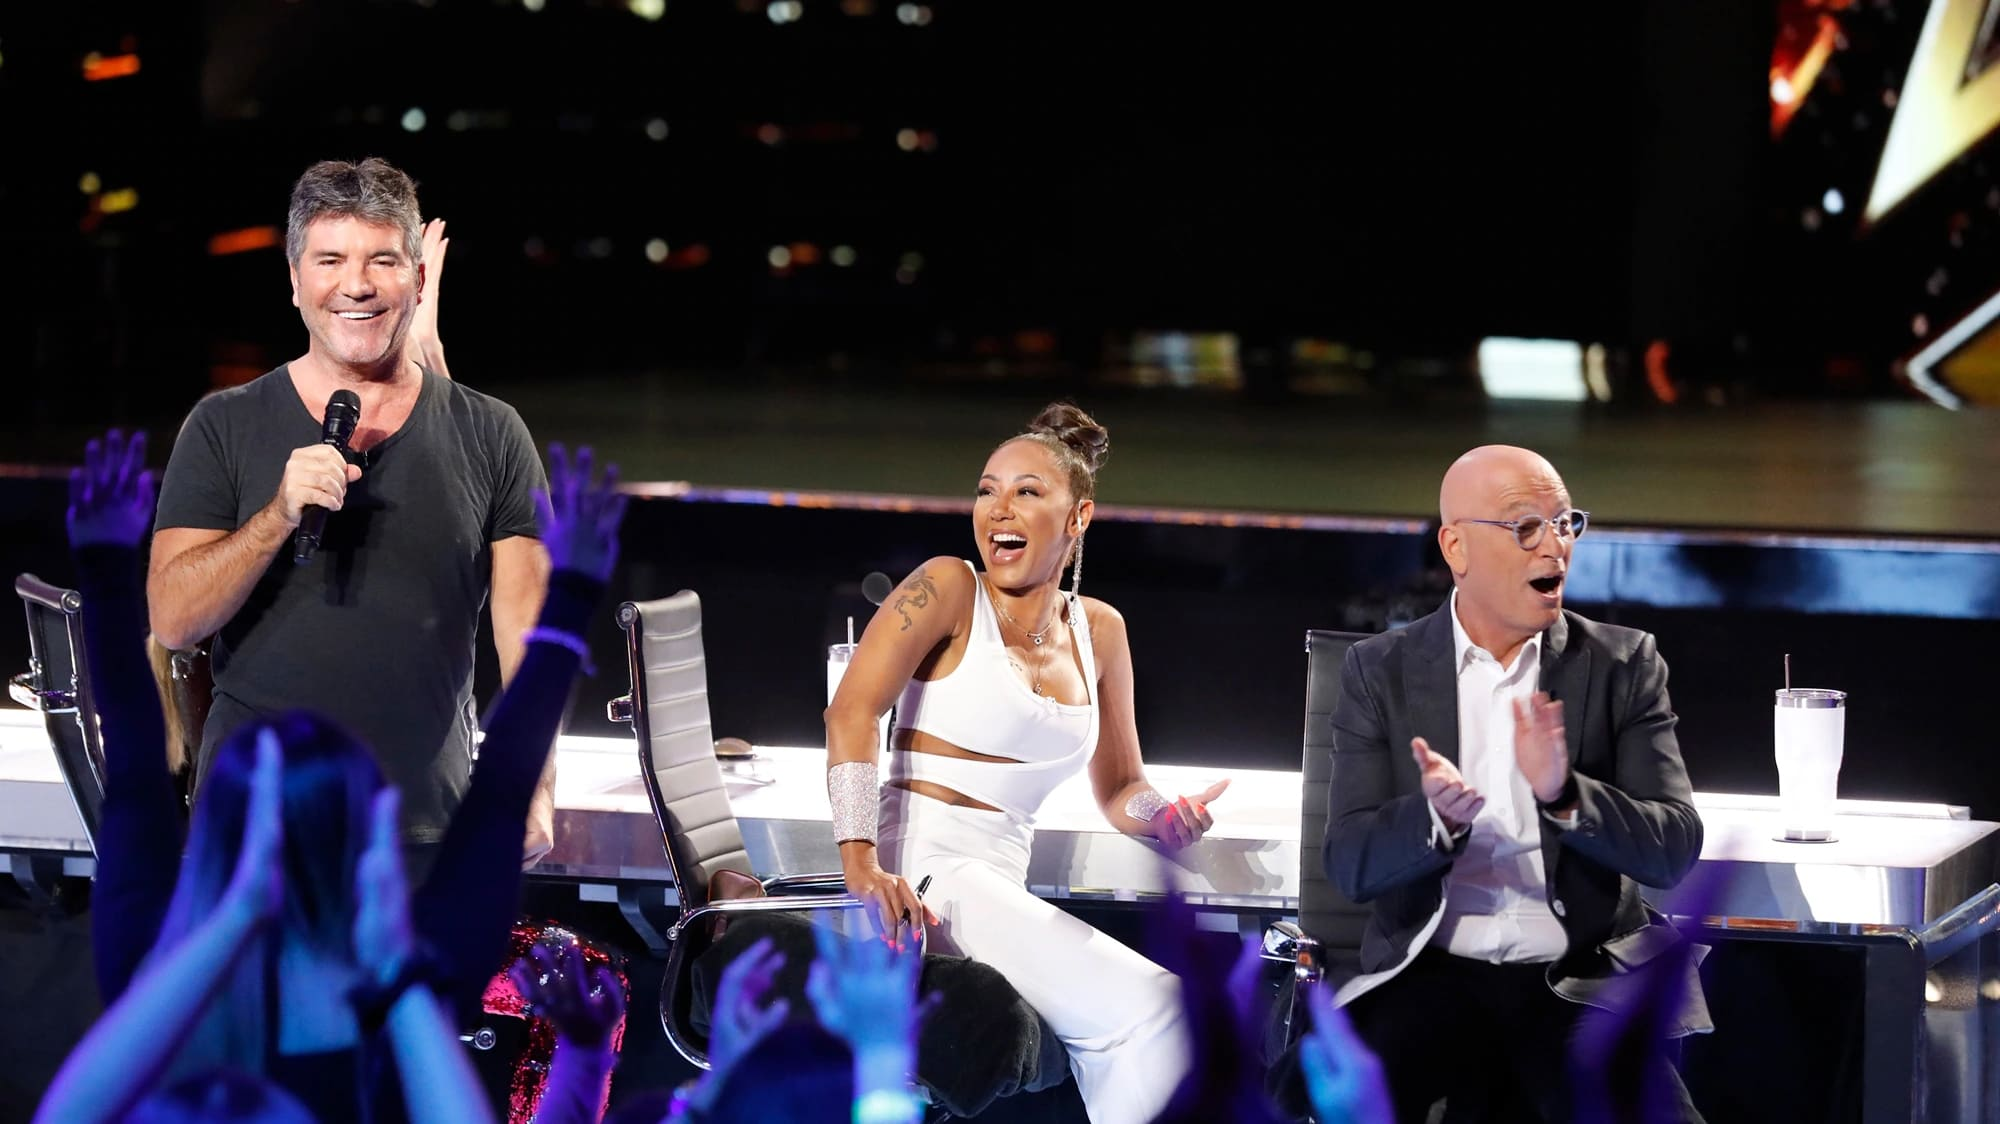 americas got talent season 14 episode 26